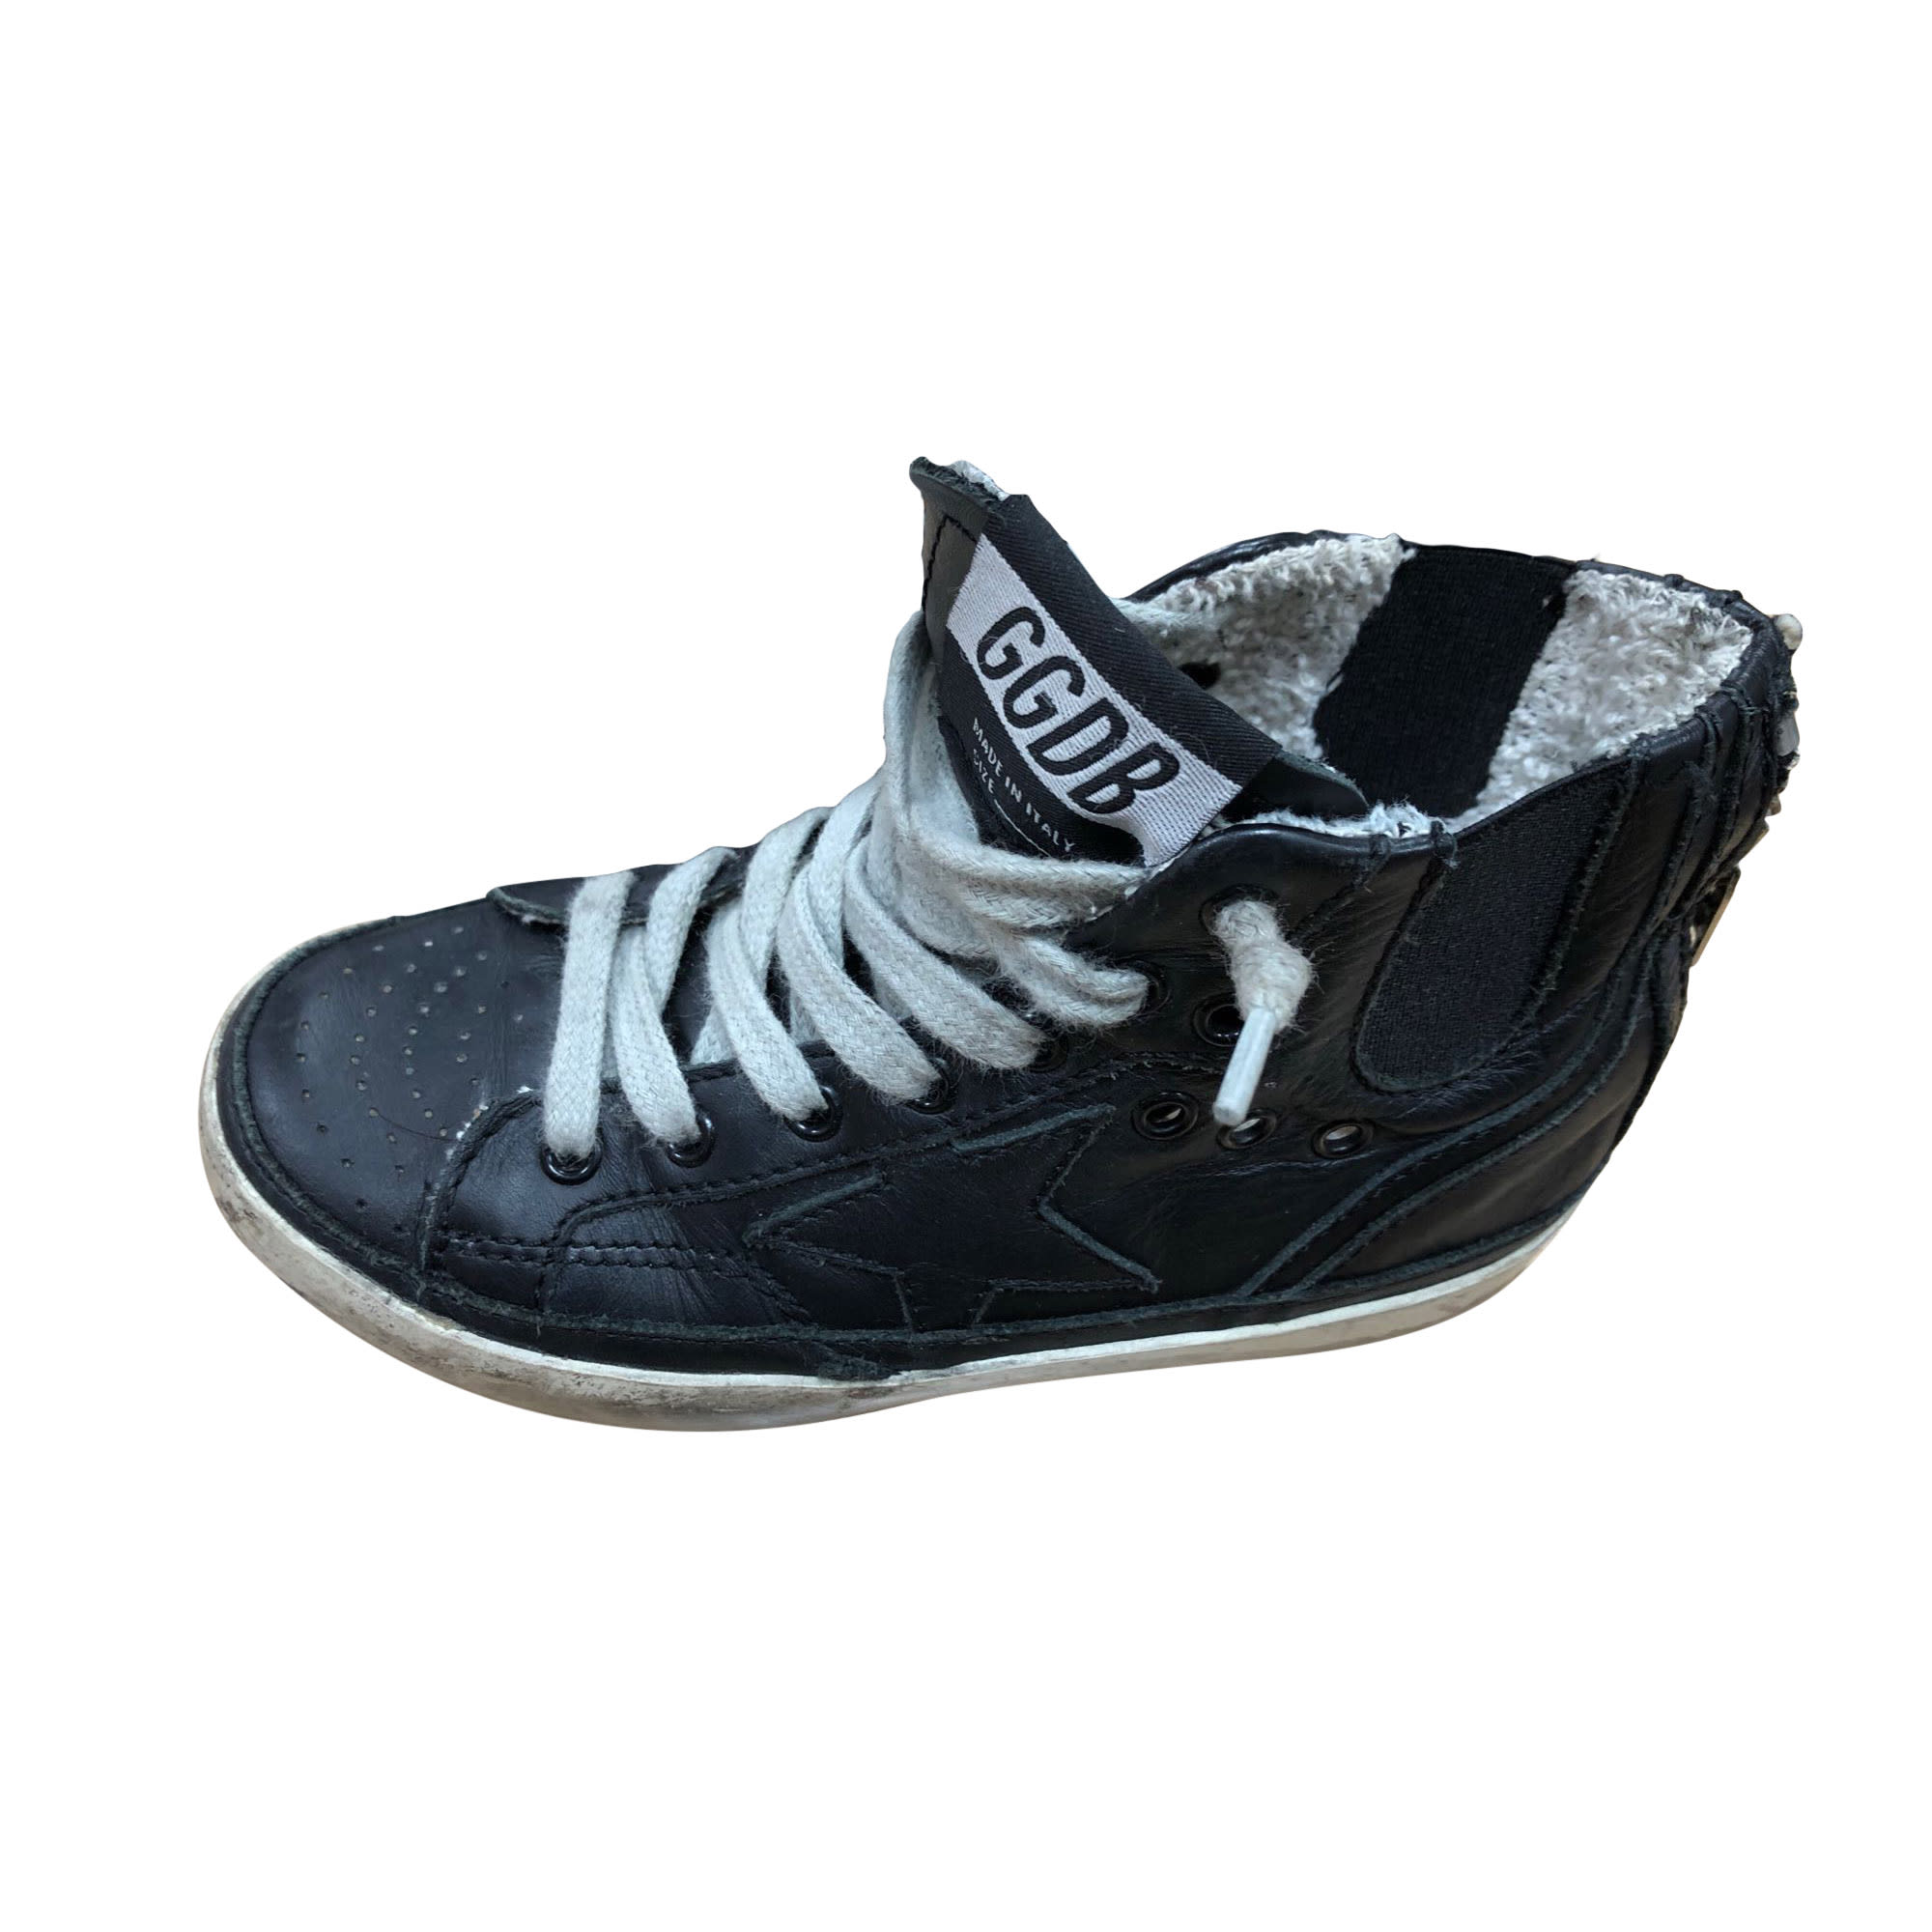 Calzature sportive GOLDEN GOOSE Nero